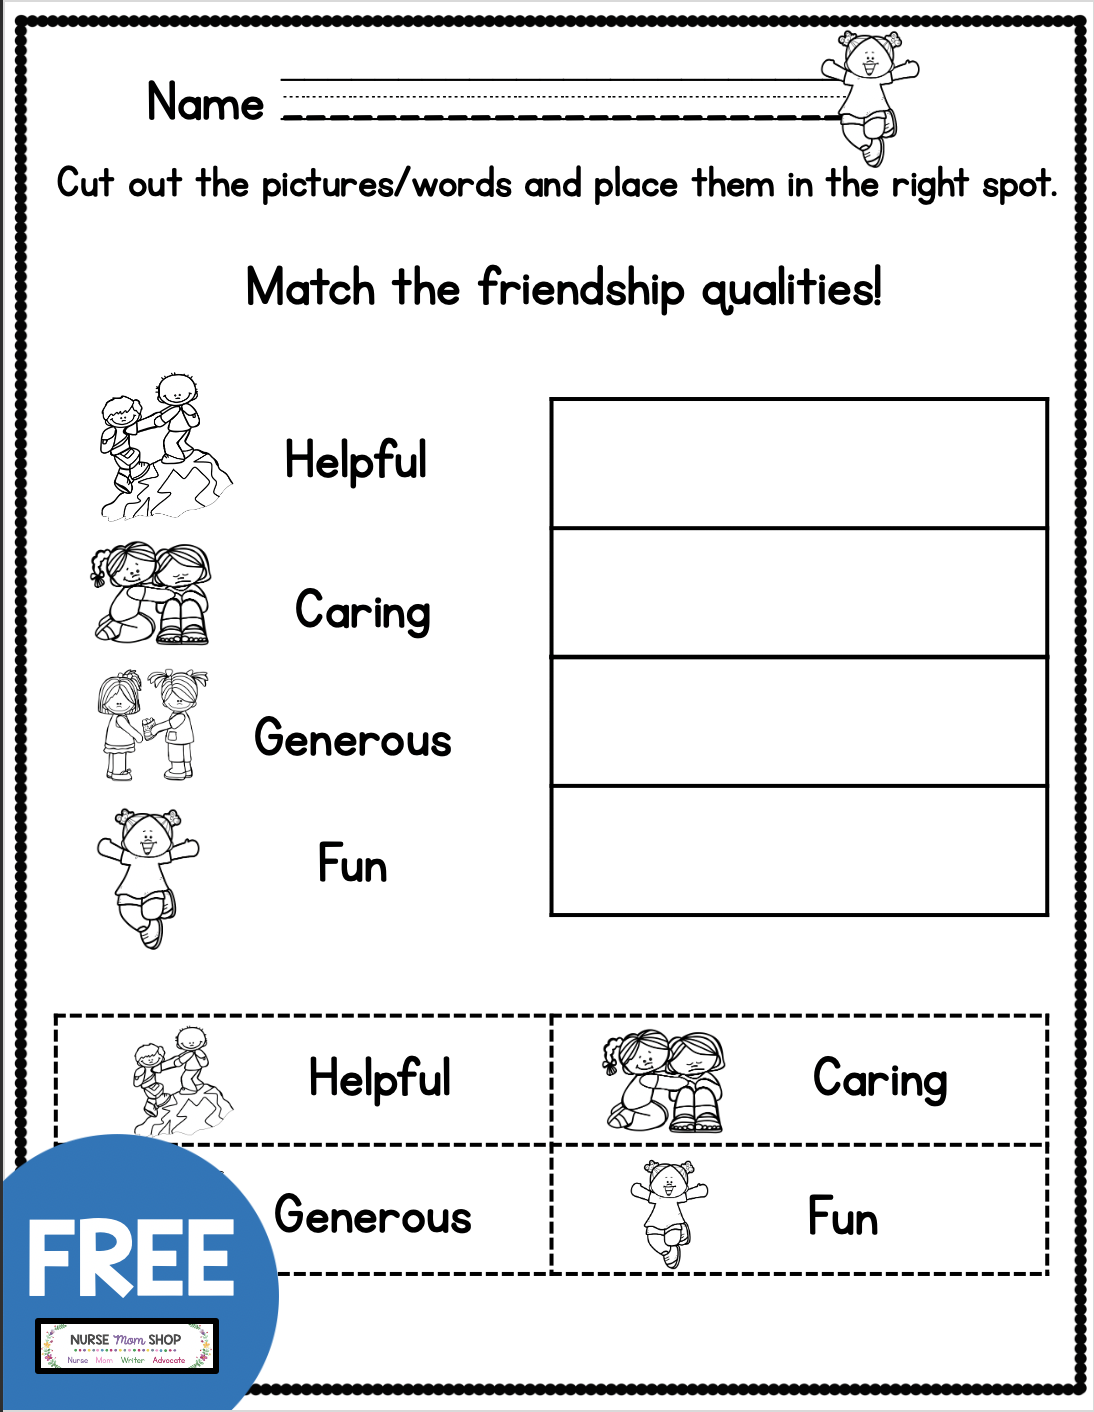 Free Printable Social Skills Worksheets